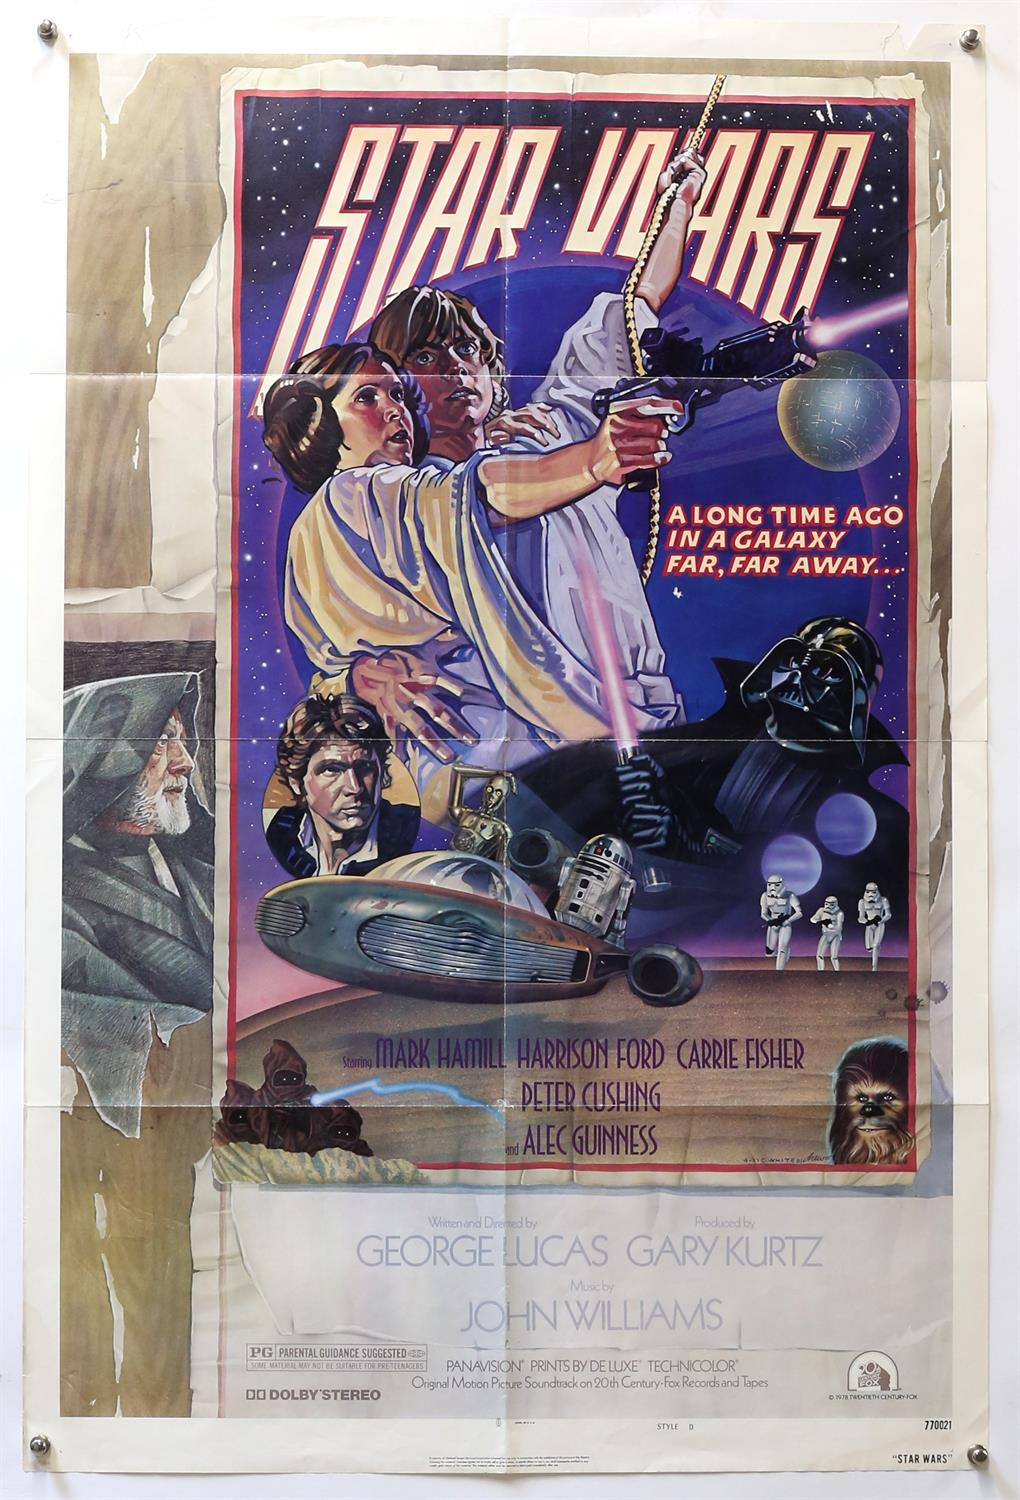 Star Wars (1977) US One Sheet film poster, Style D, artwork by Drew Struzan and Charles White,